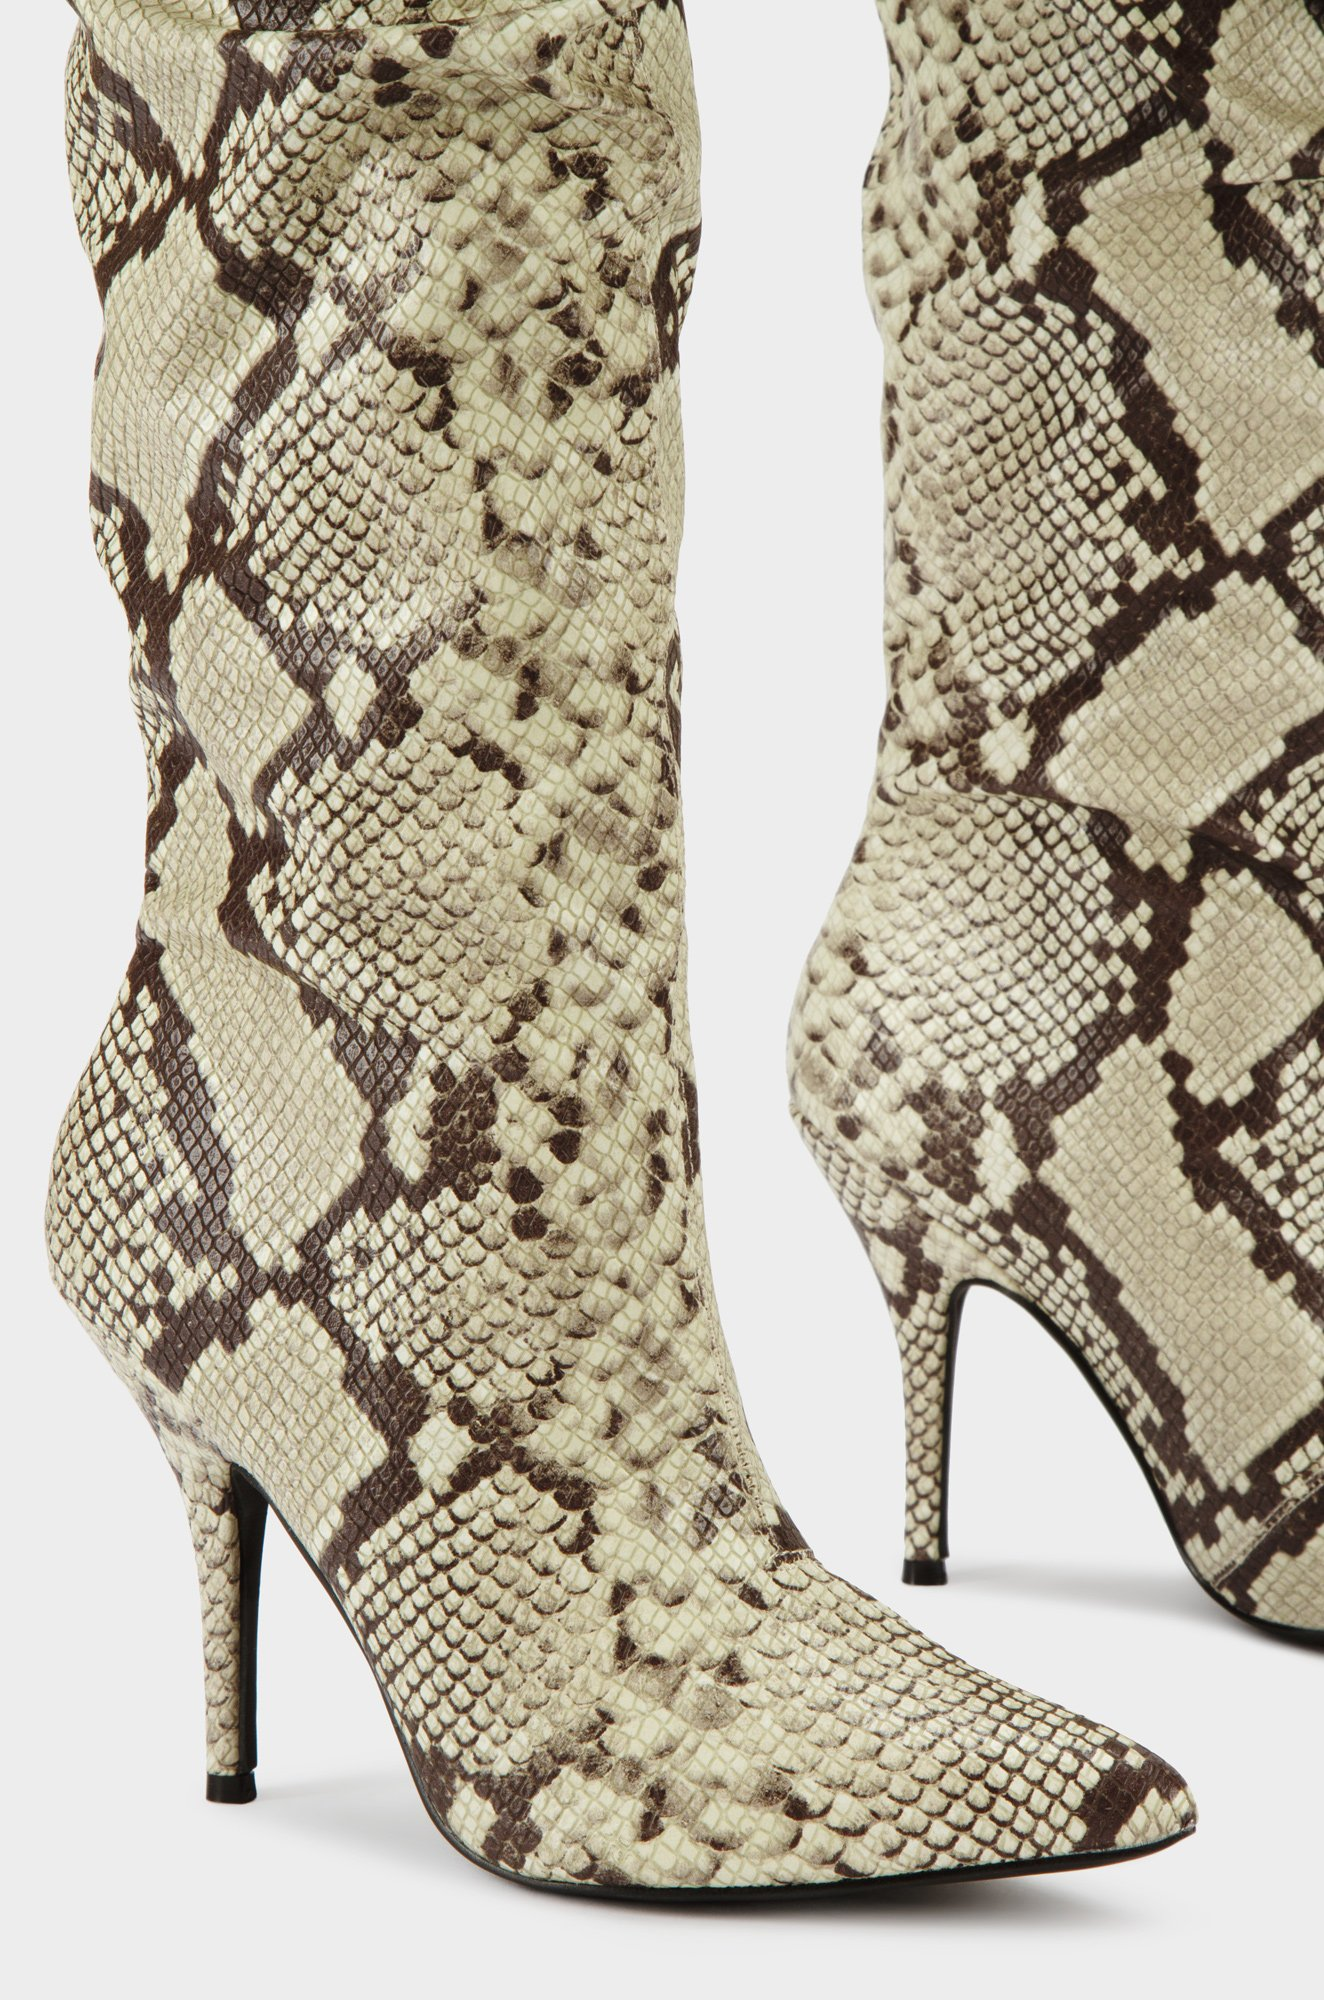 Cape-Robbin-Bown-Snake-Thigh-High-Slouch-Pointed-Toe-Over-The-Knee-Stiletto-Boot thumbnail 26